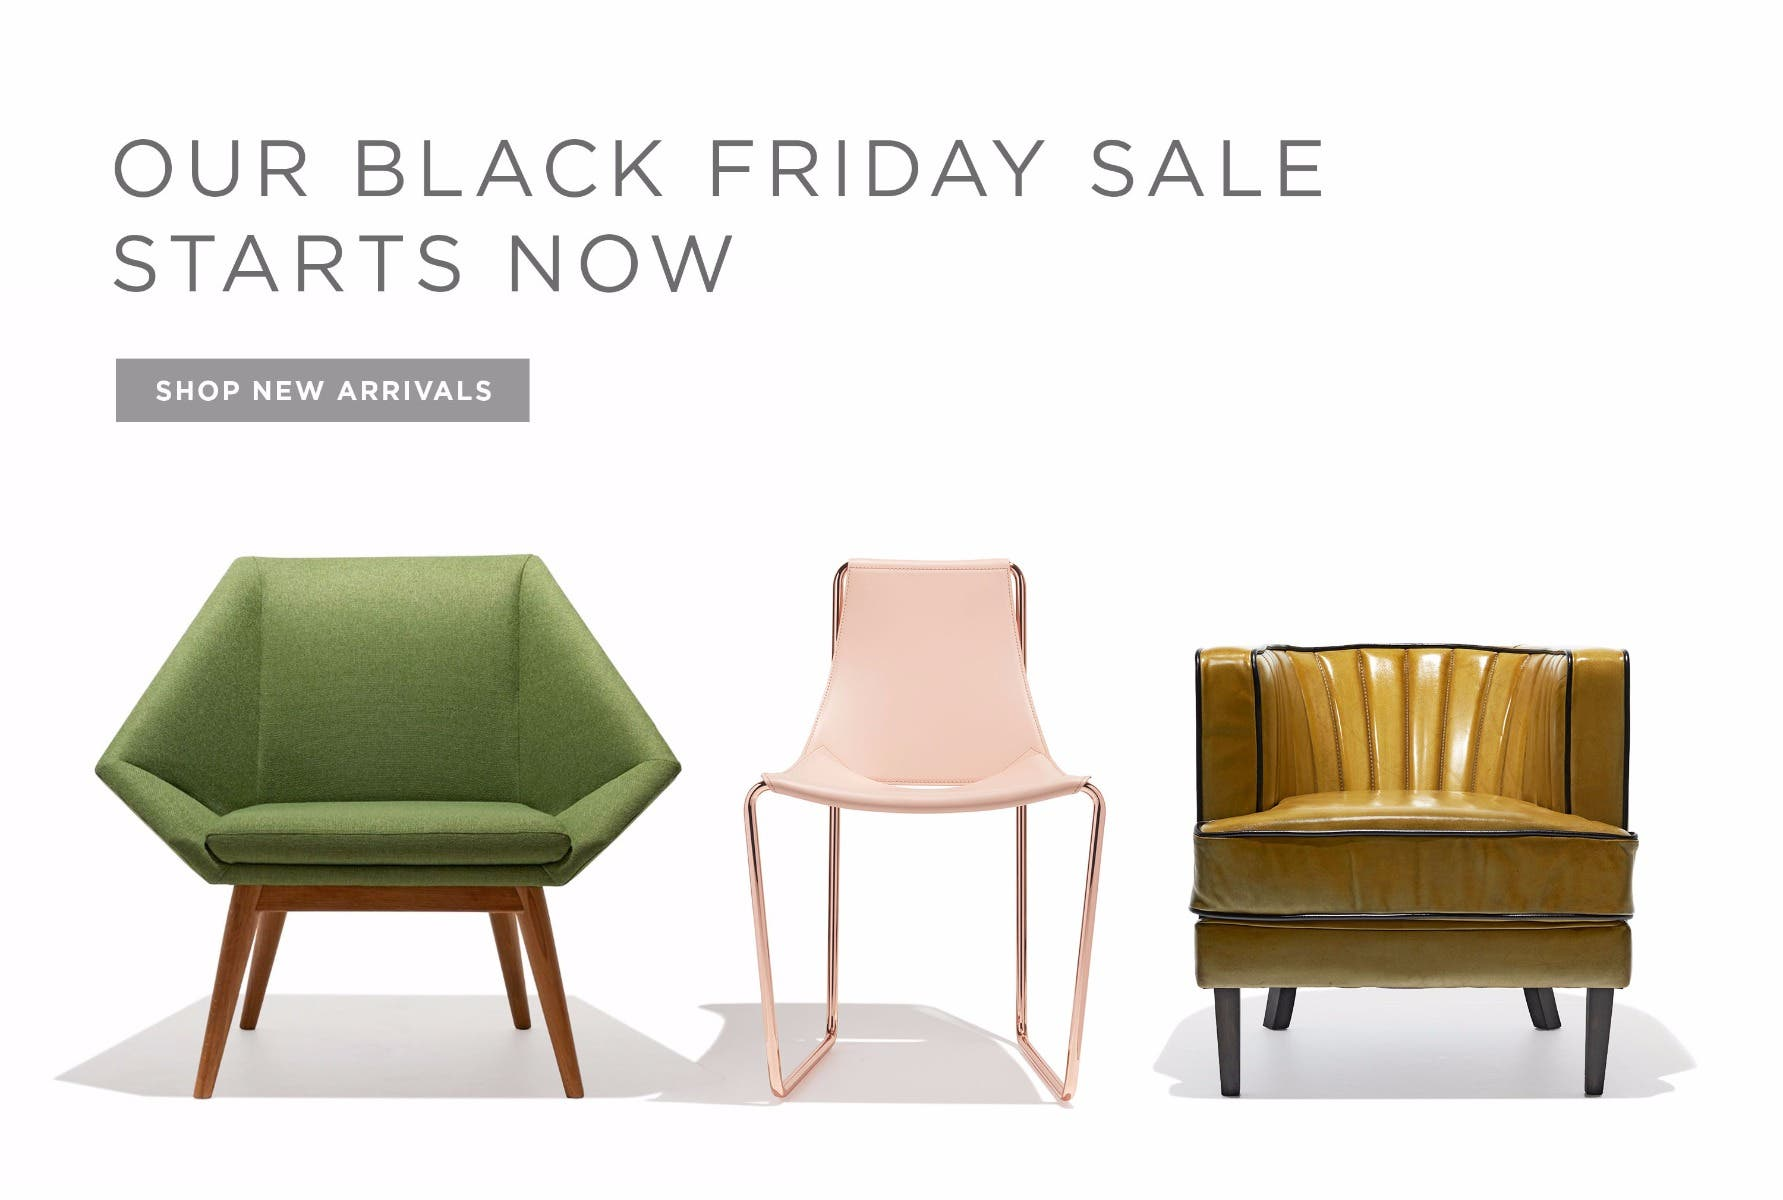 Our Black Friday Sale Starts Now